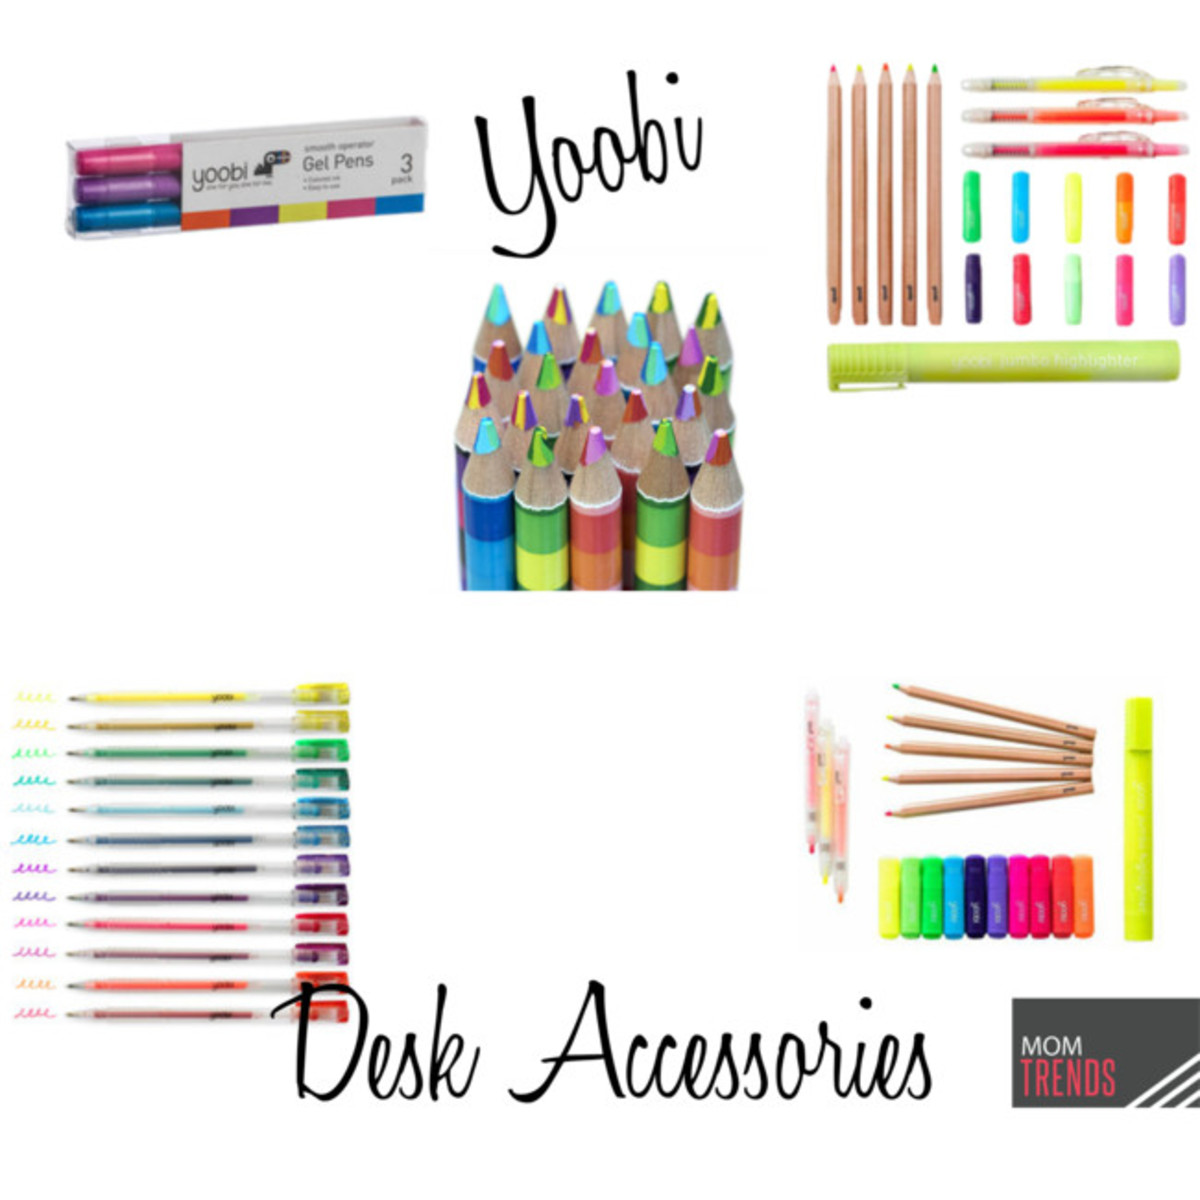 yoobi desk accessories